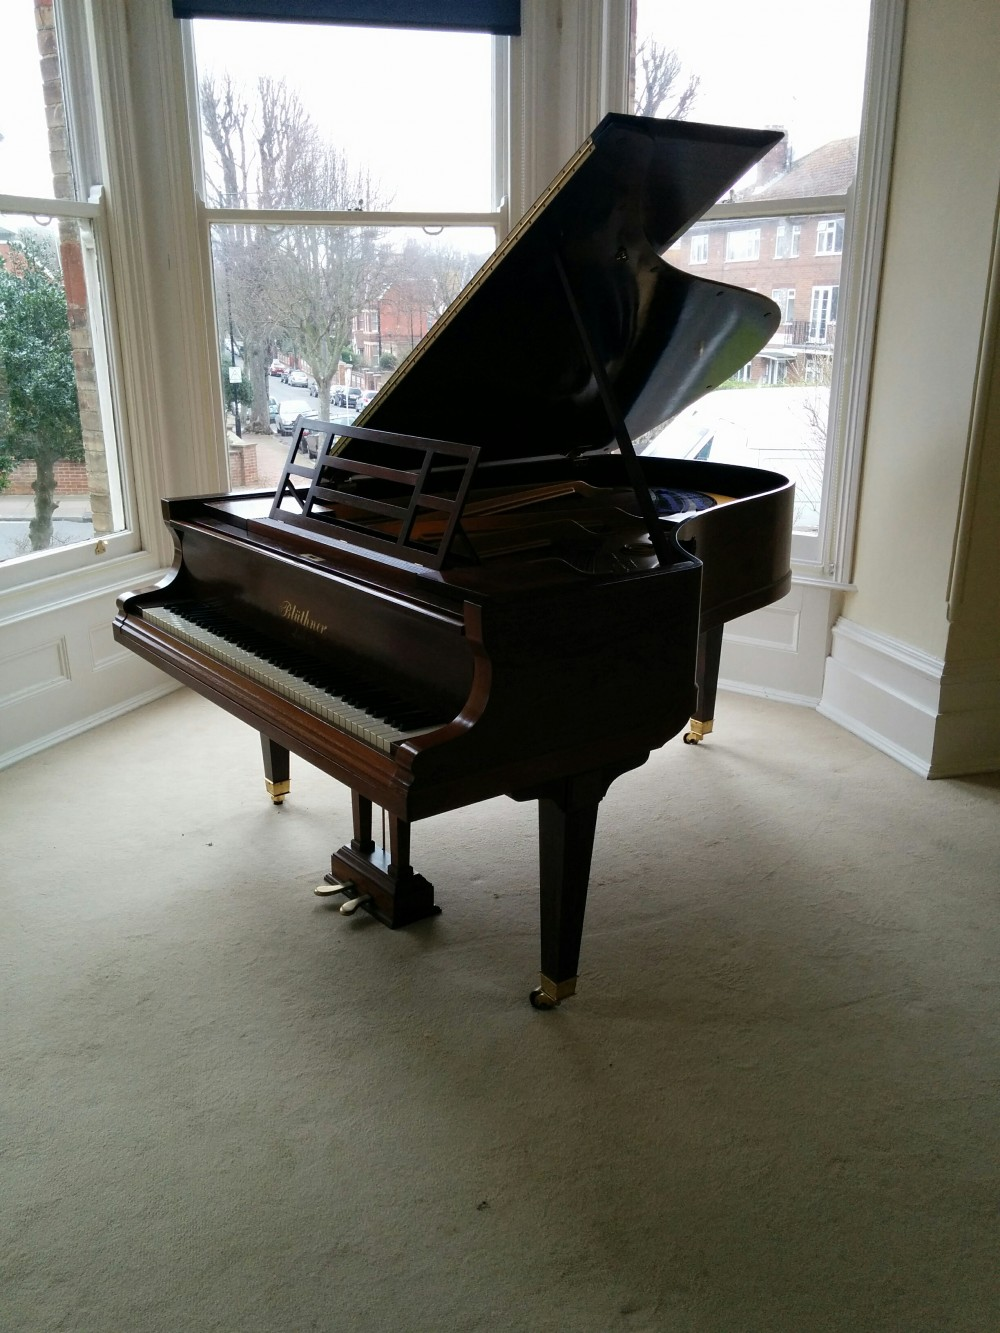 The 'boudoir' grand piano in its new home